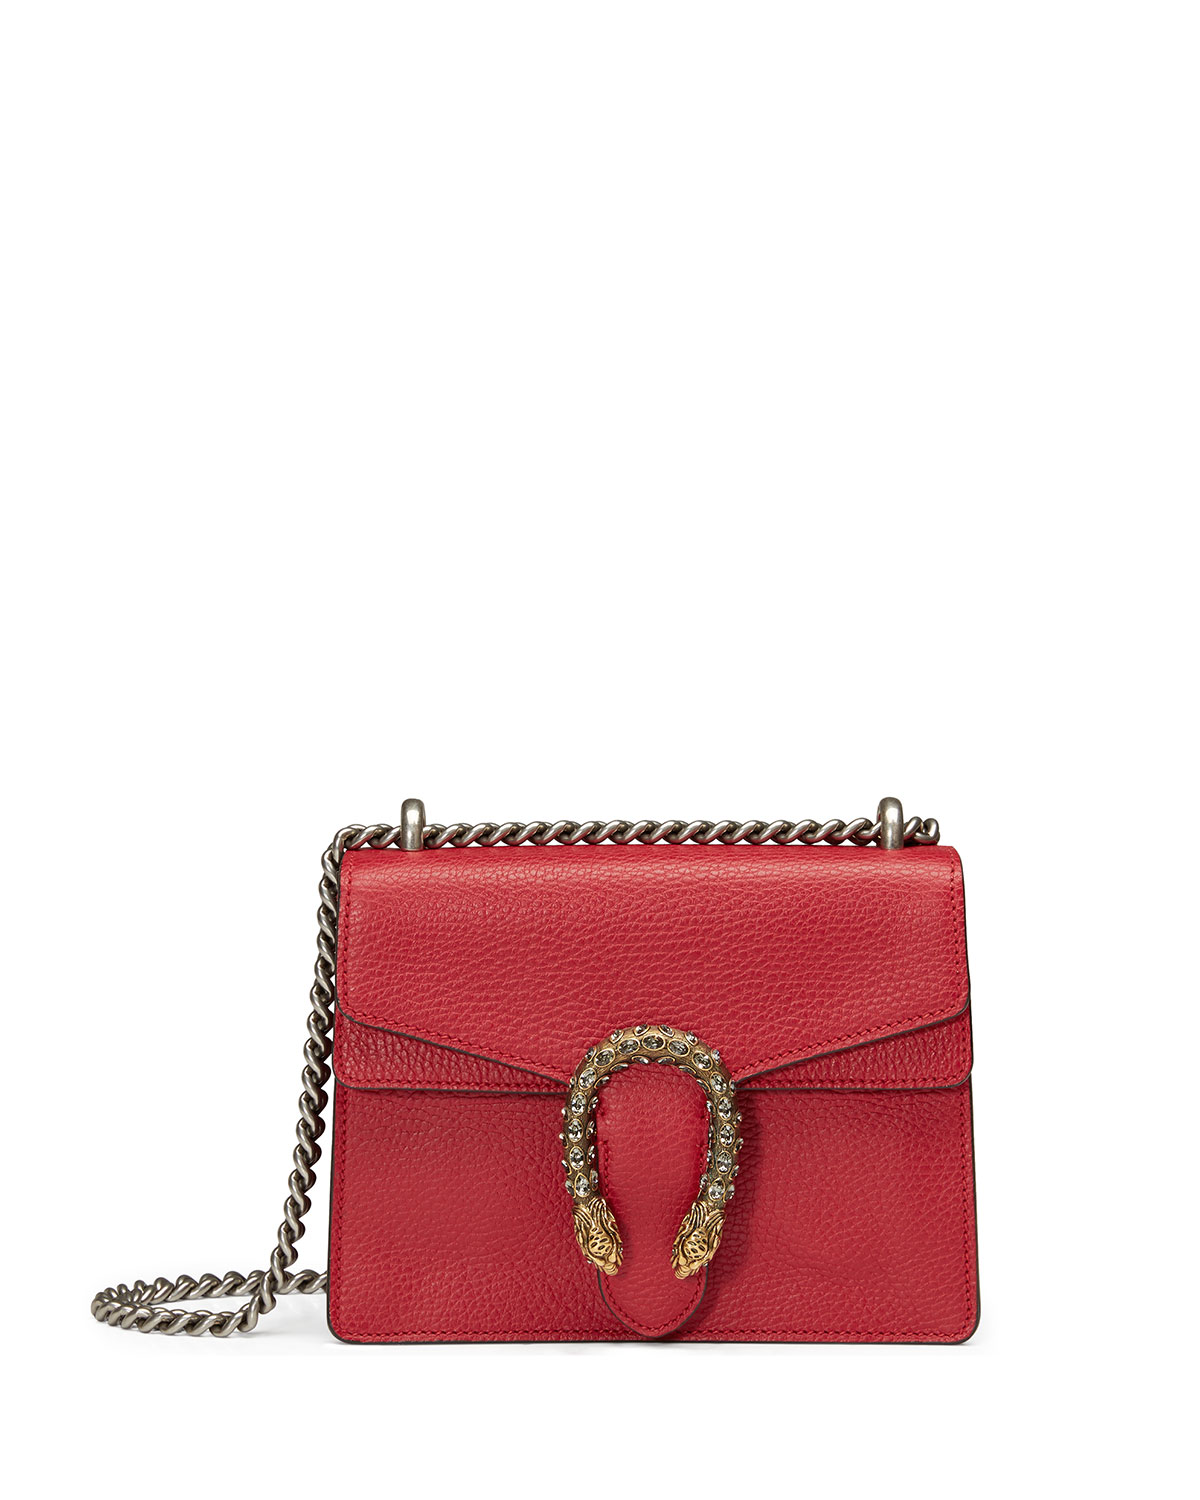 b86306717995 Gucci Dionysus Leather Shoulder Bag, Red | Neiman Marcus